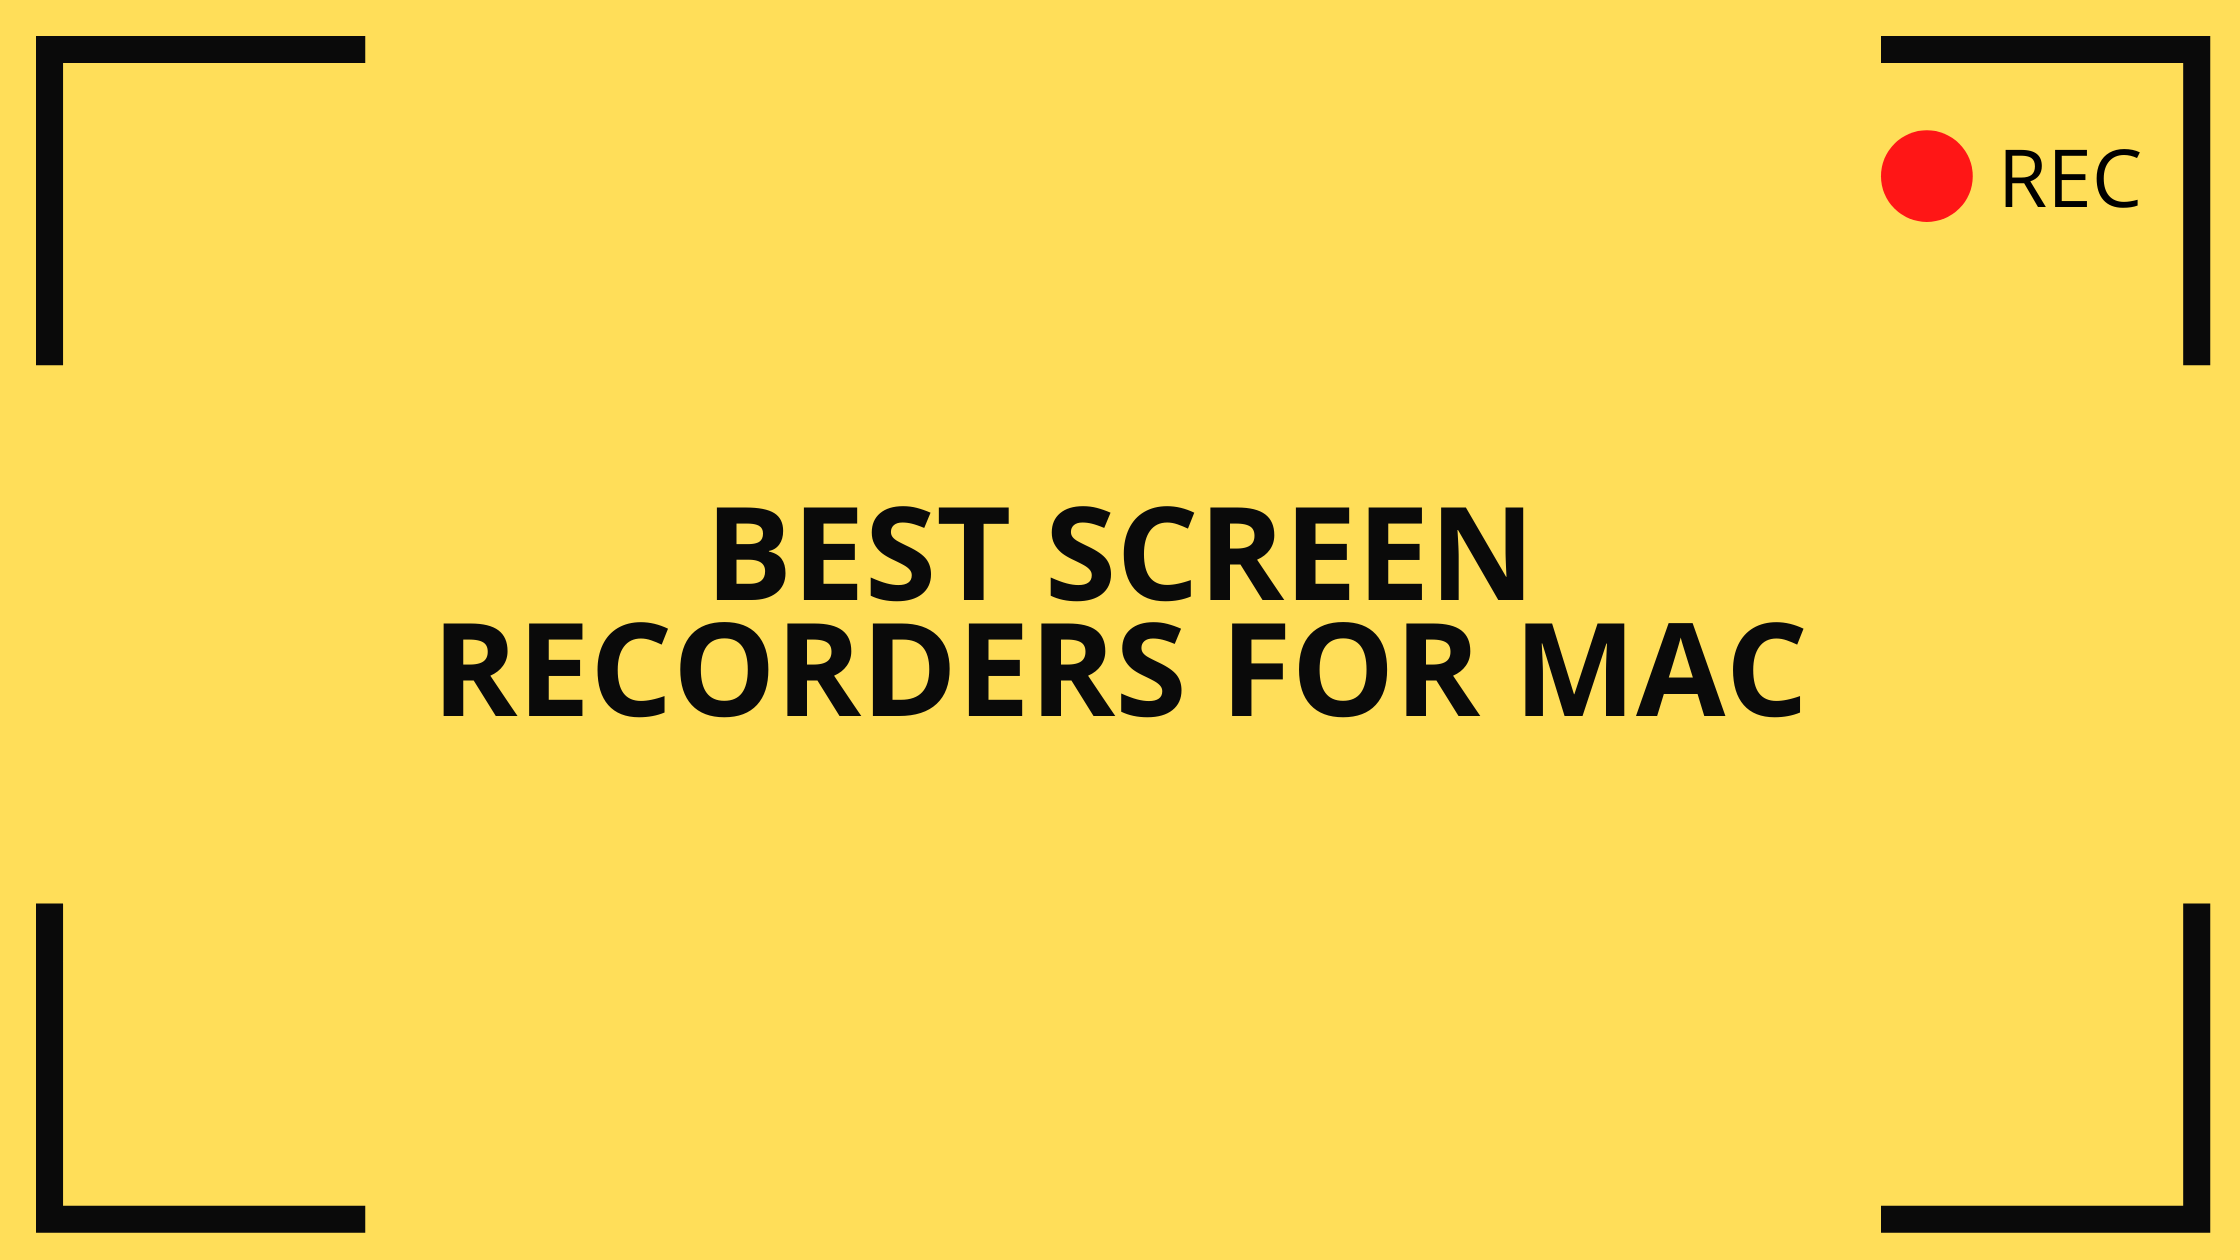 Best Screen Recorders For Mac